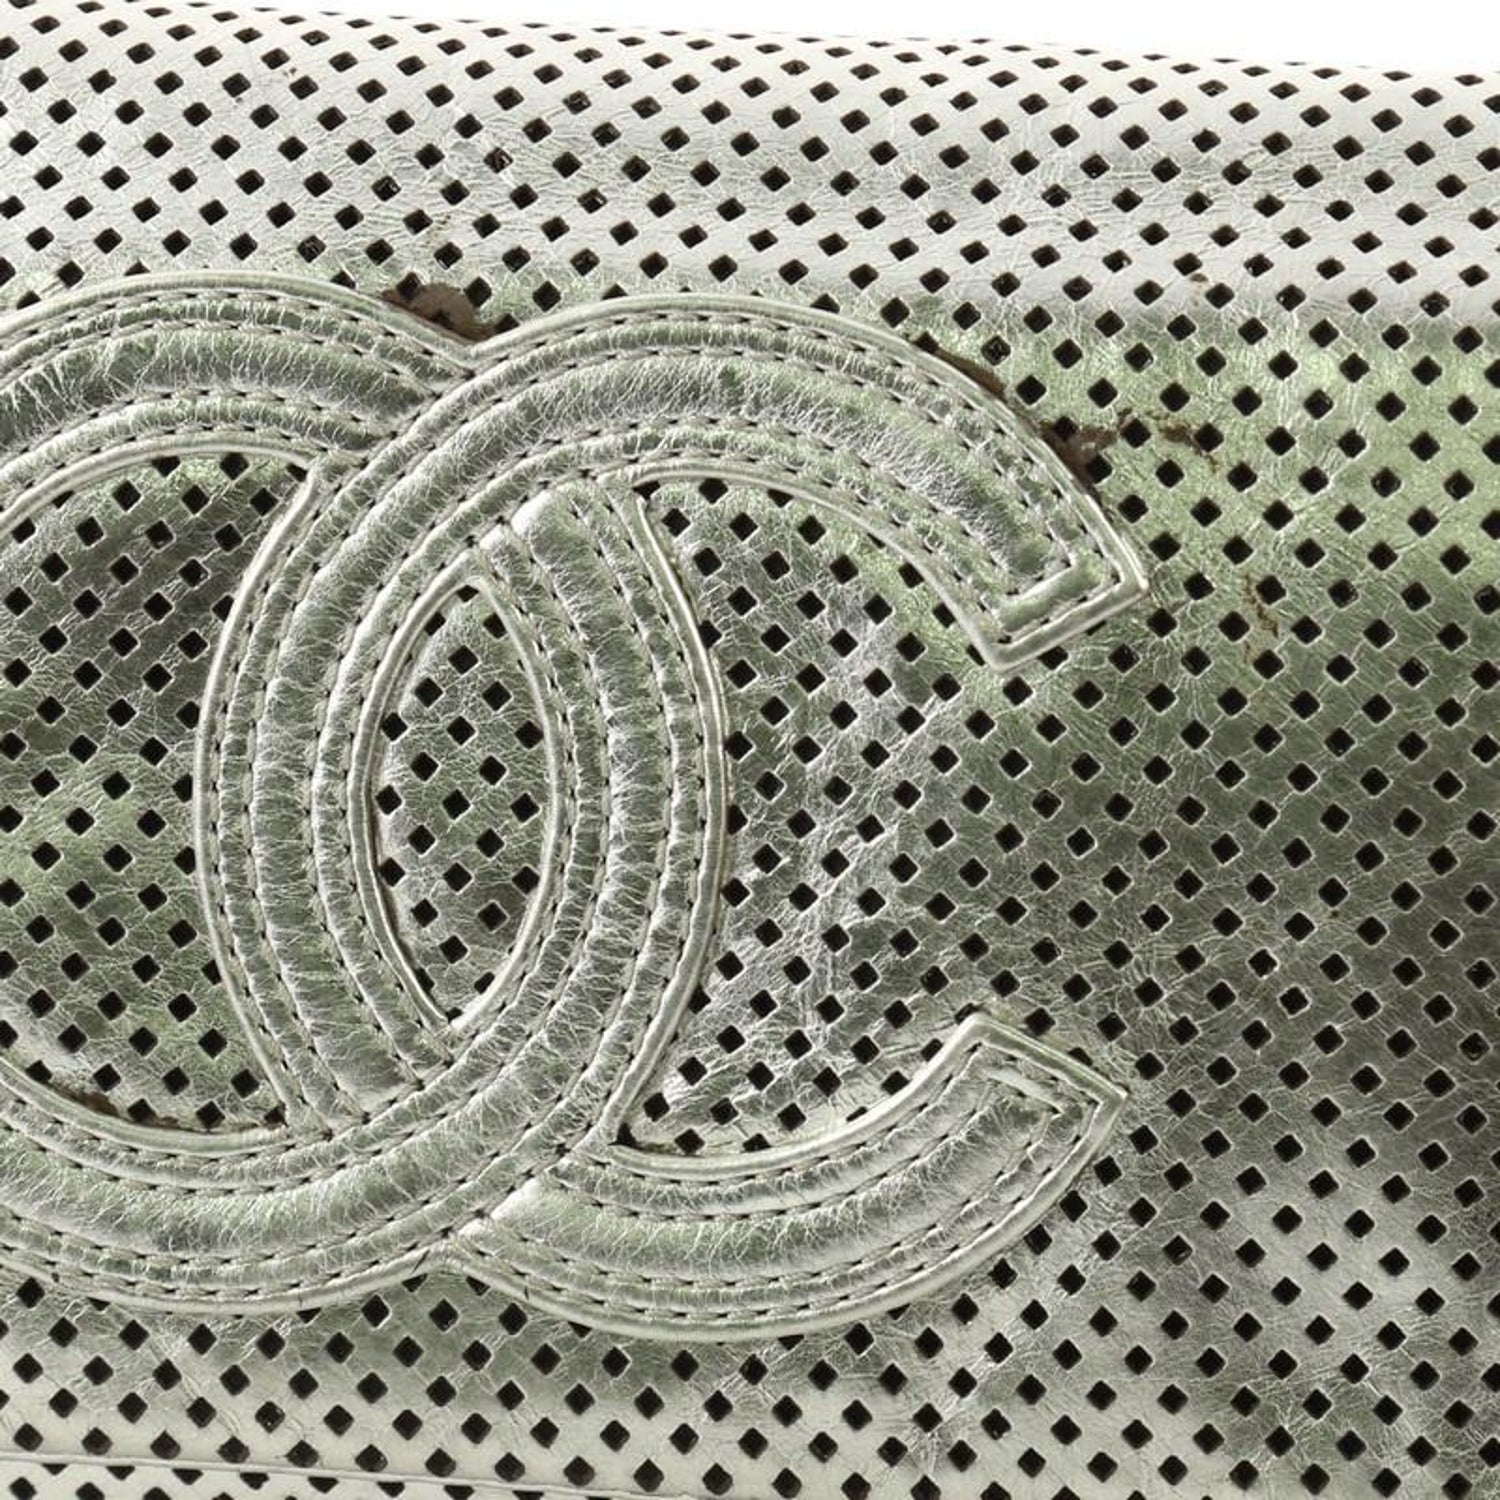 ca5b5d1f1f62 Chanel Rodeo Drive Flap Bag Perforated Leather Medium at 1stdibs